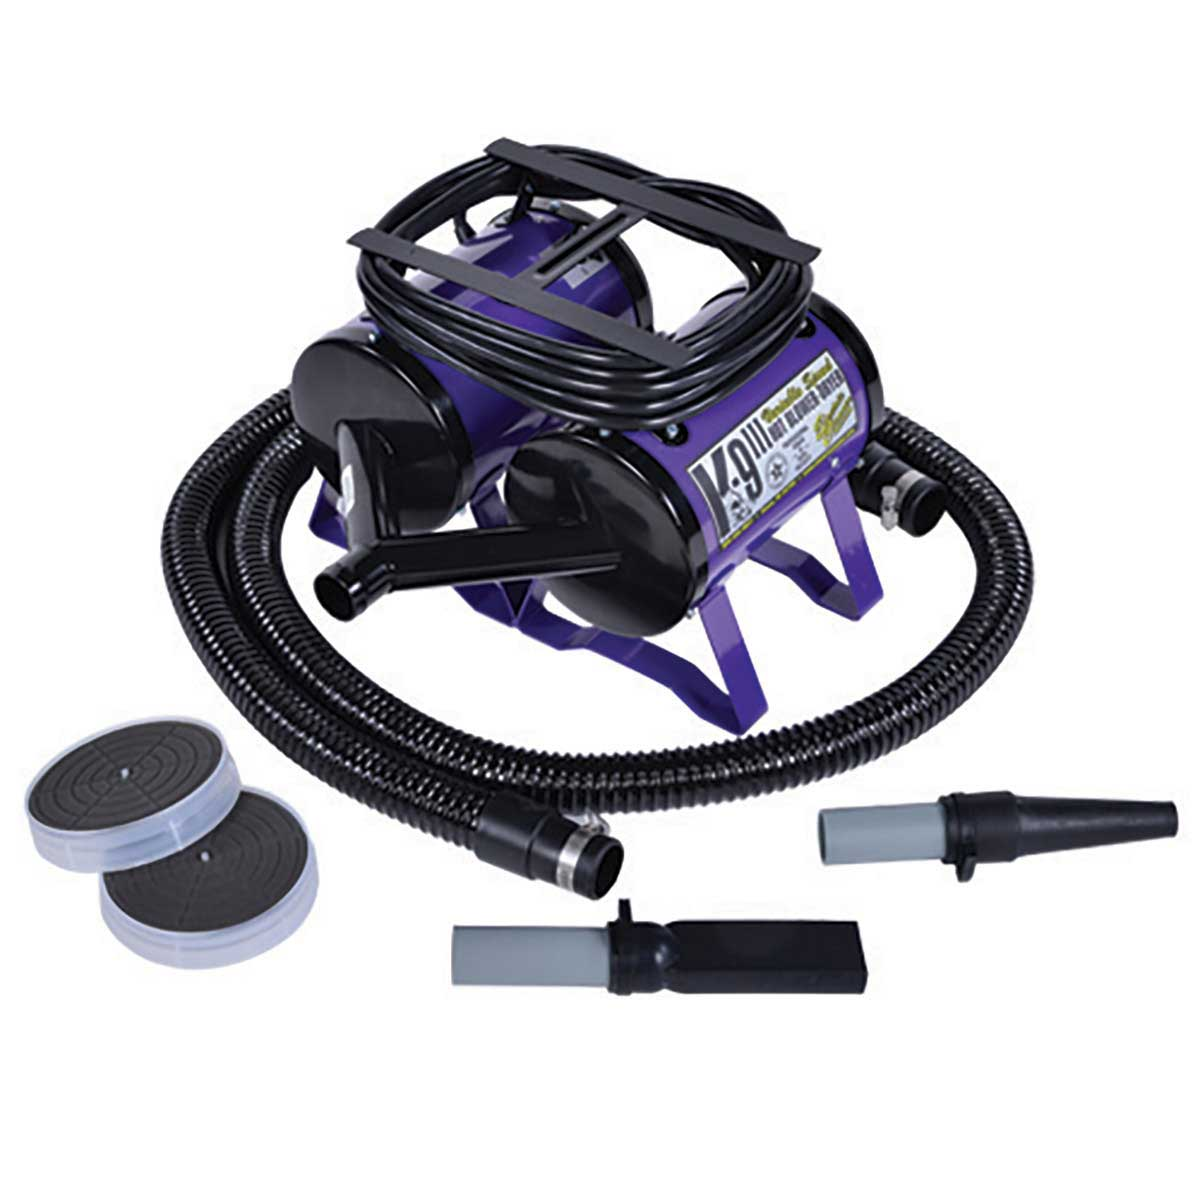 K-9 III Dryer Variable Speed for Professional Dog Grooming